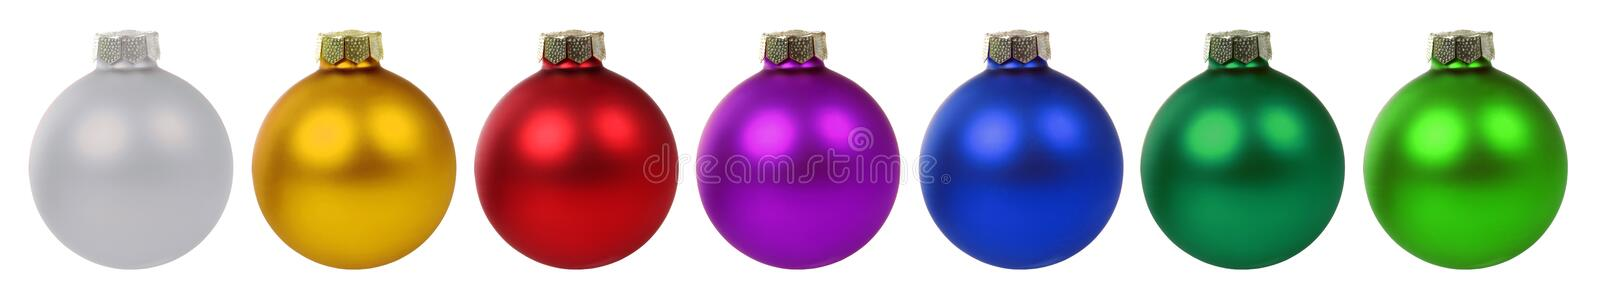 Christmas balls baubles decoration border in a row isolated on w. Christmas balls baubles decoration deco border in a row isolated on a white background stock photo